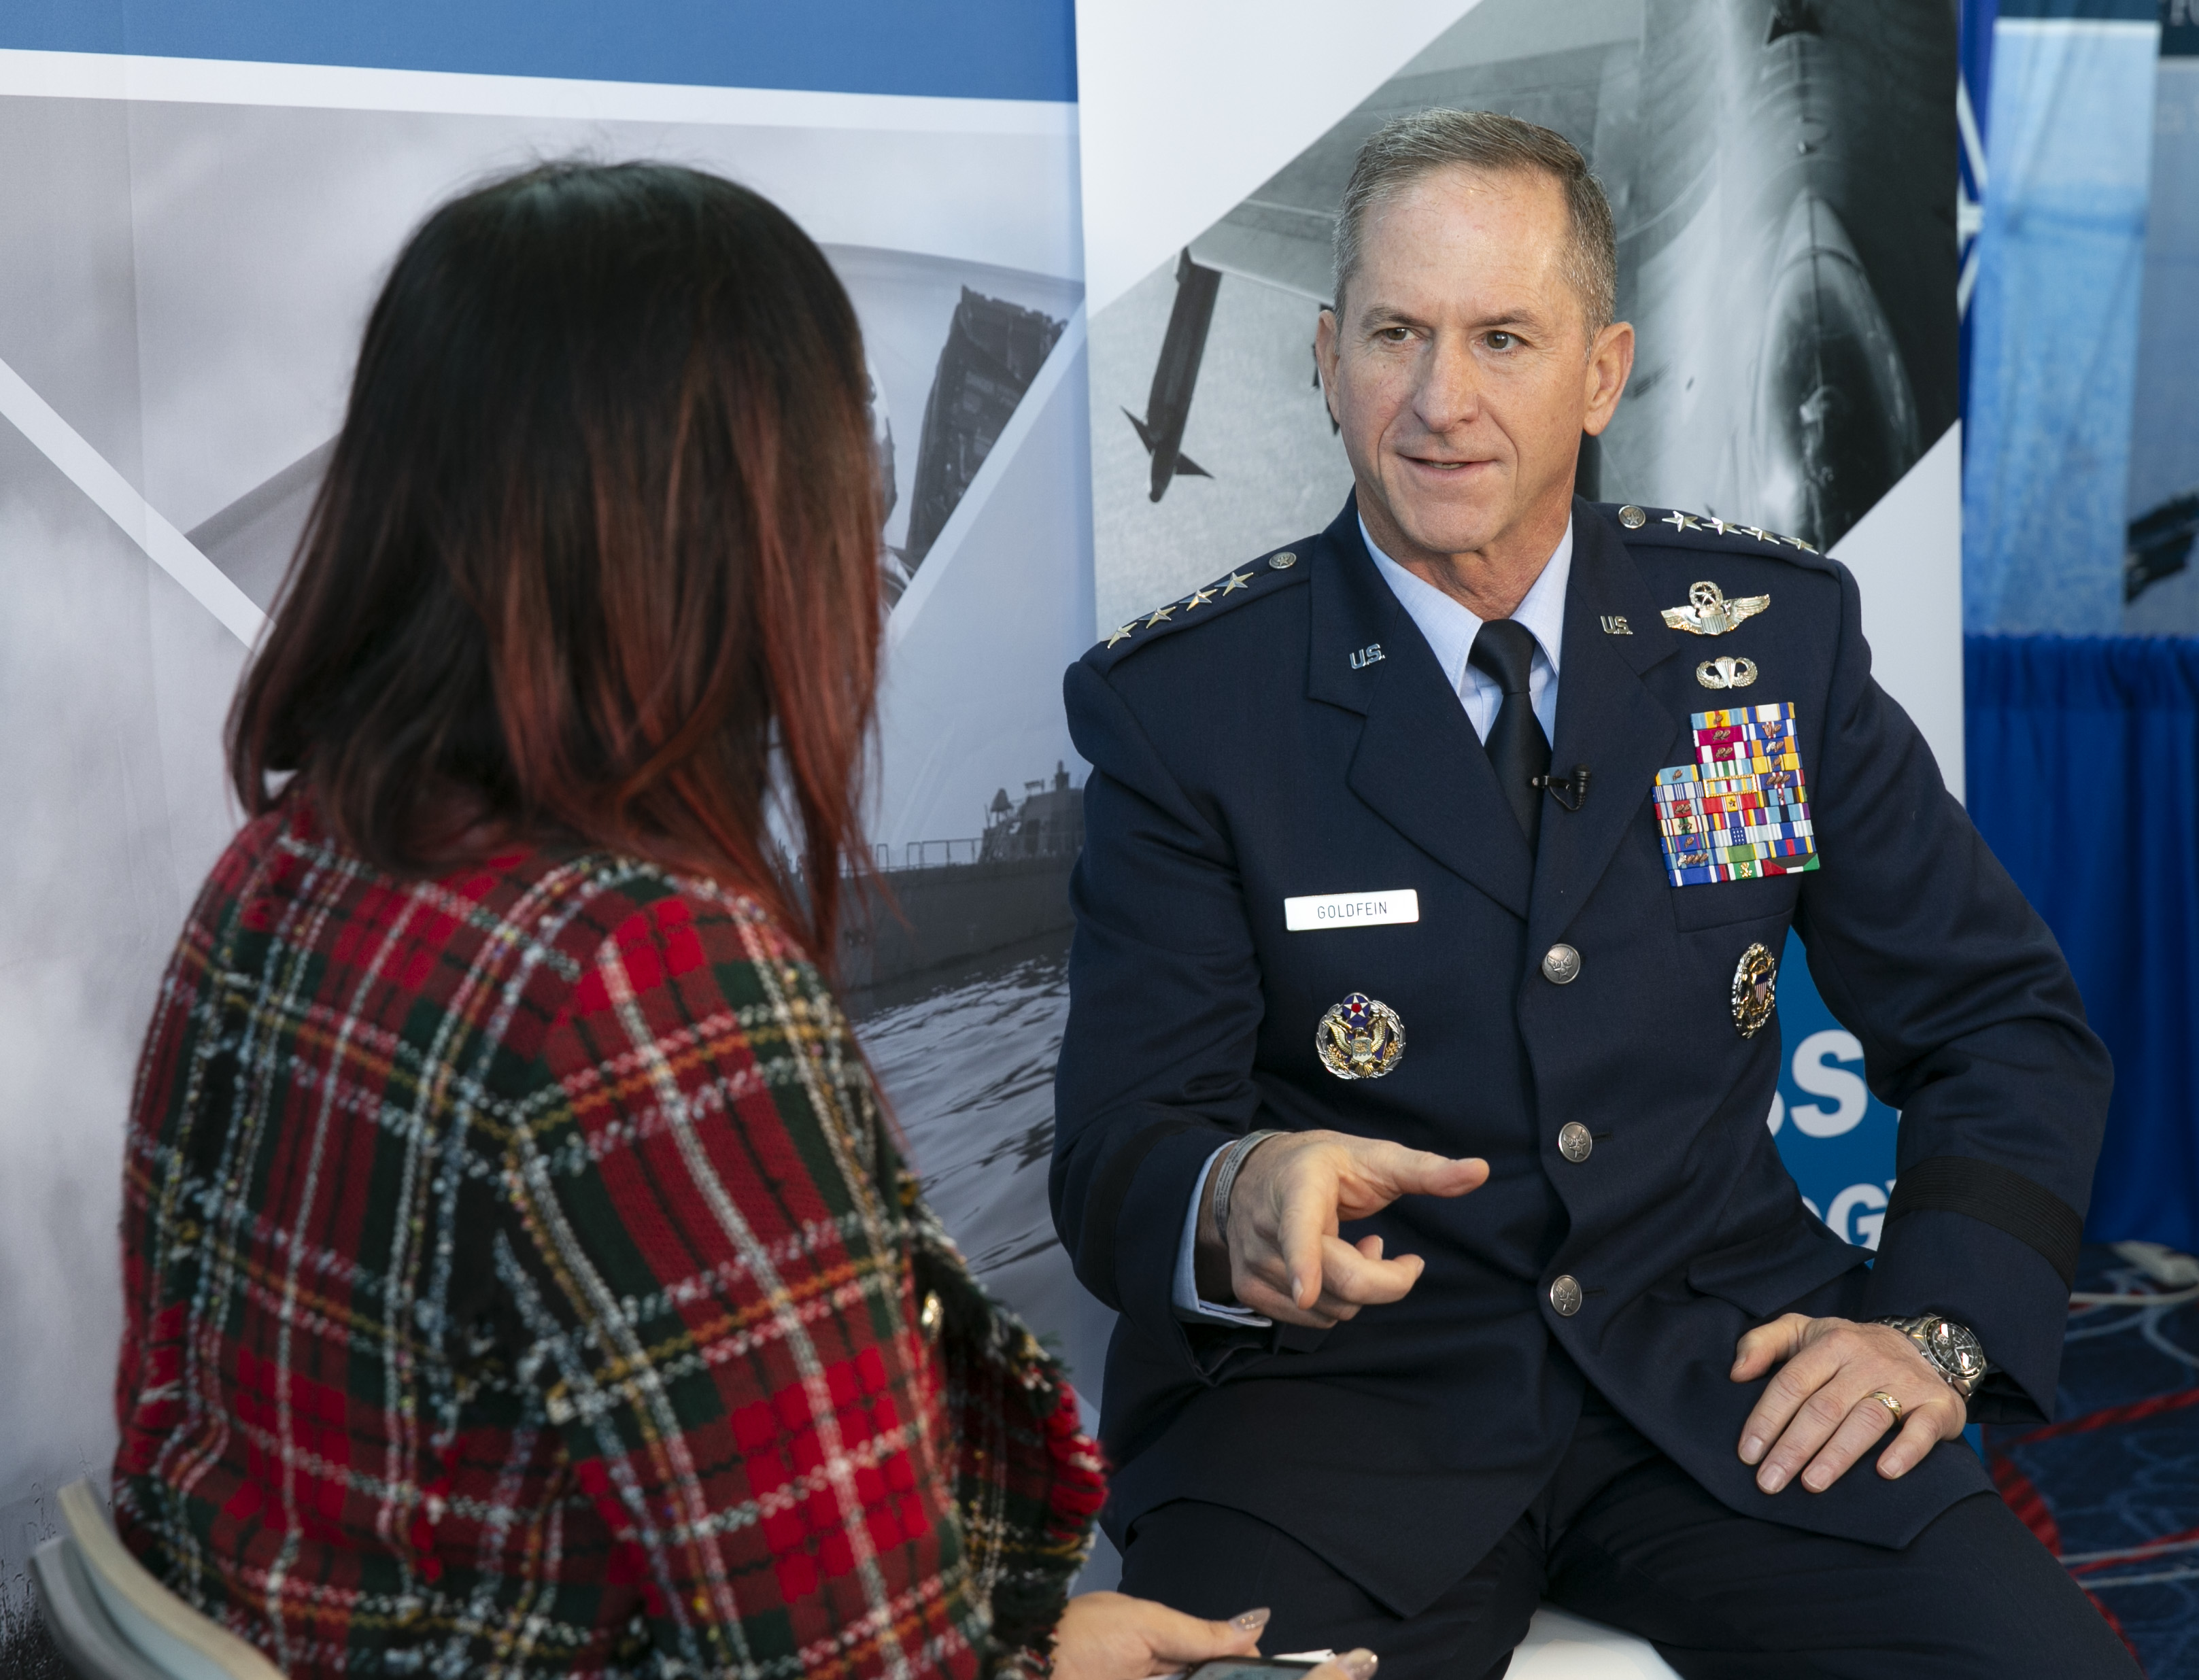 Air Force Chief of Staff Gen. David Goldfein is interviewed by Defense News reporter Valerie Insinna during the Air Force Association's Air, Space & Cyber conference held at the Gaylord National Resort & Conference Center in Oxon Hill, MD. (Alan Lessig/Staff)